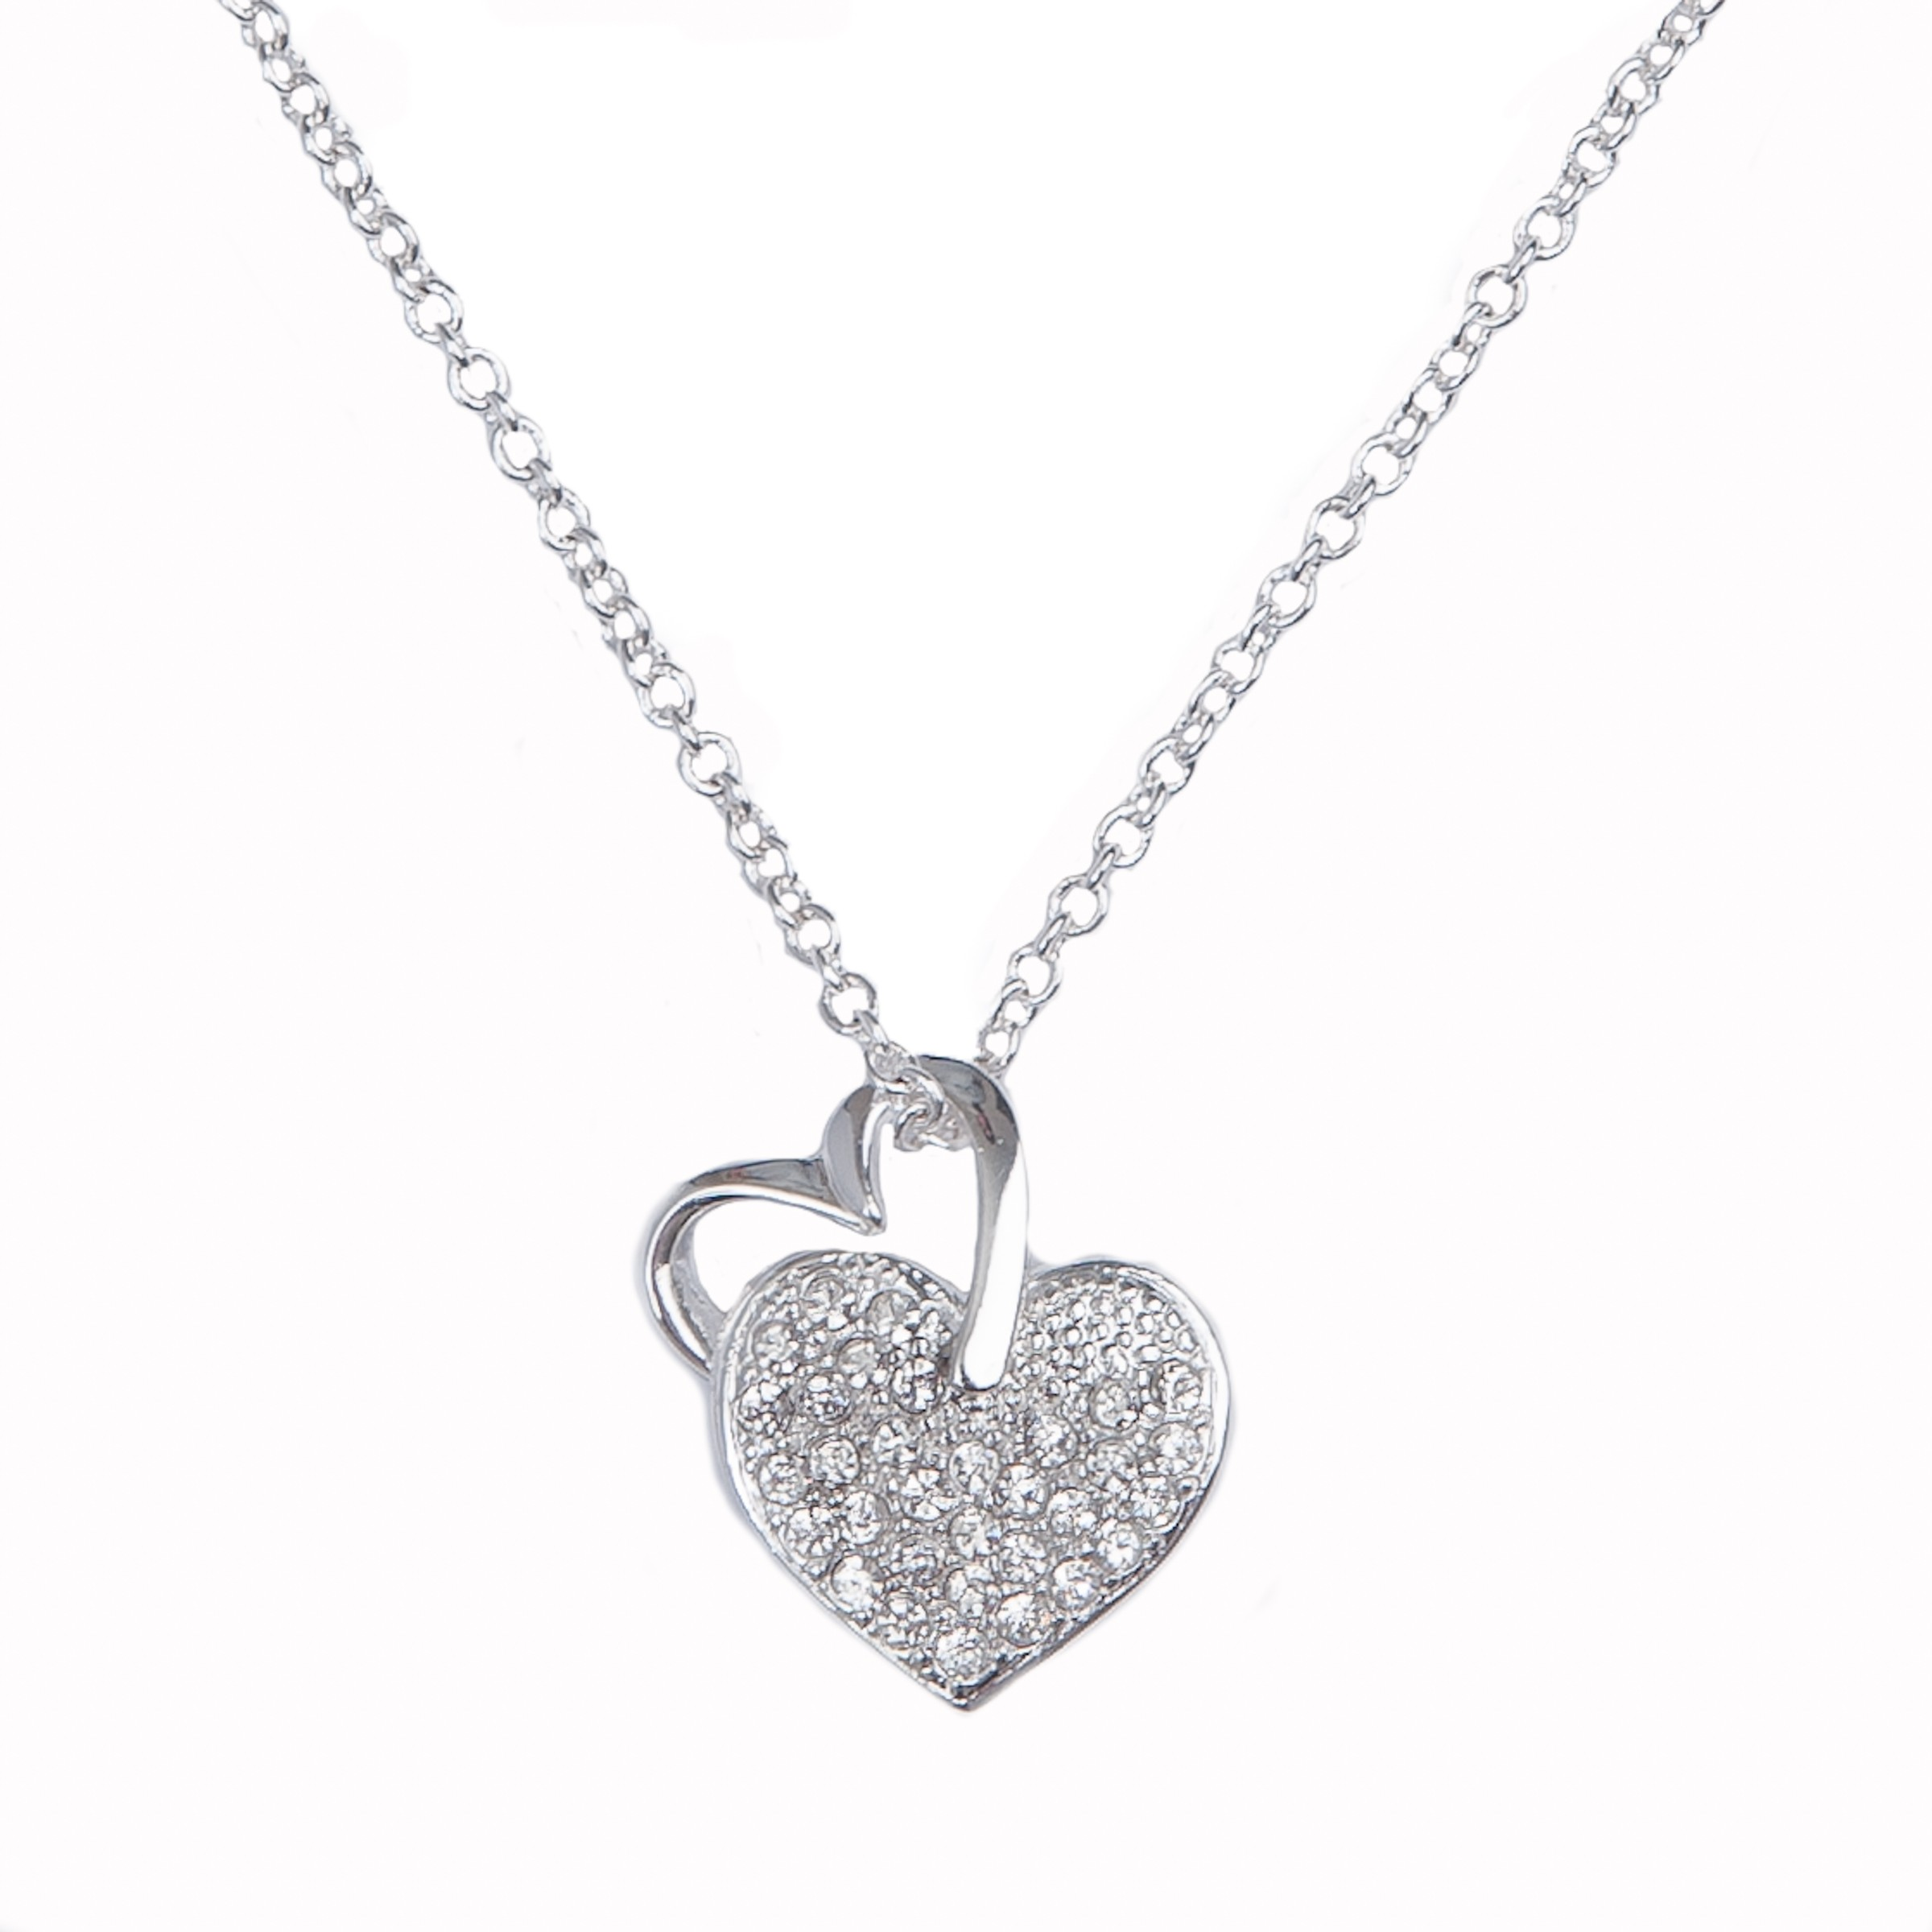 Isabella Heart Necklace